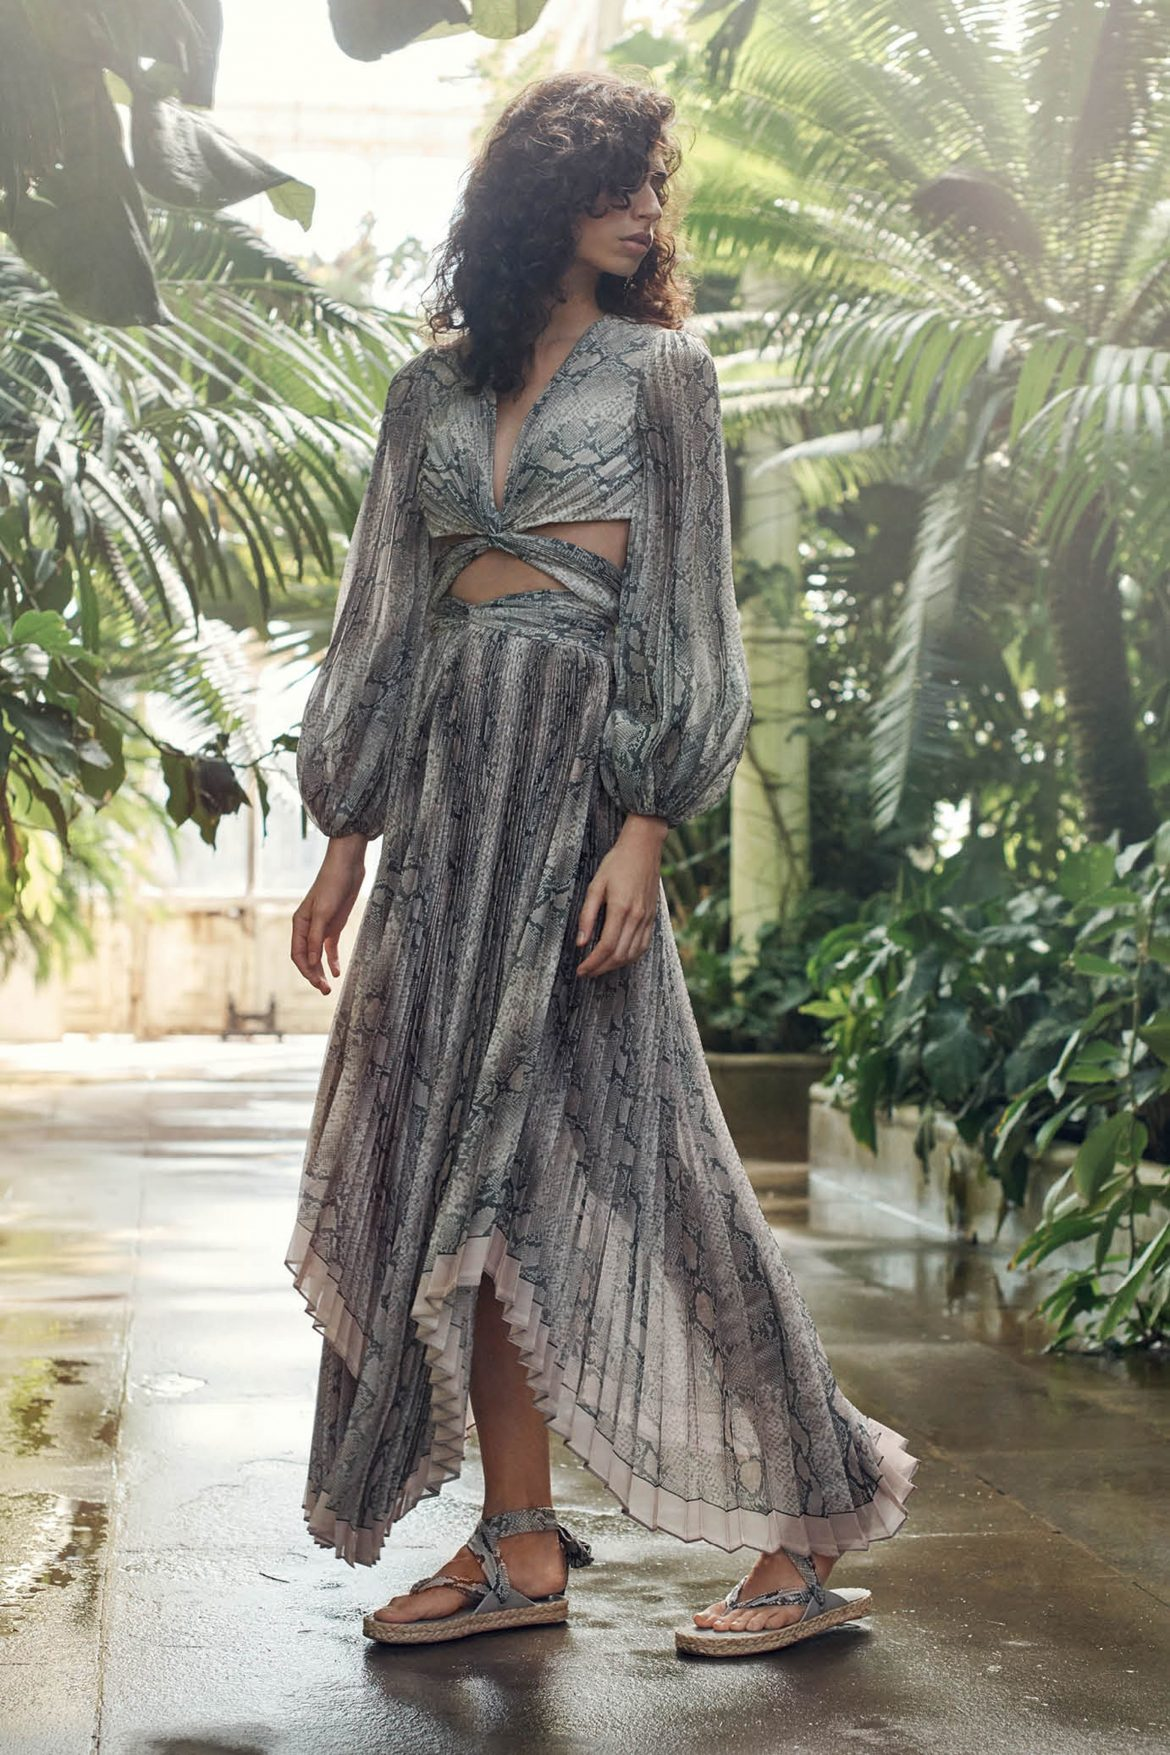 A look into Zimmermann Resort 2019